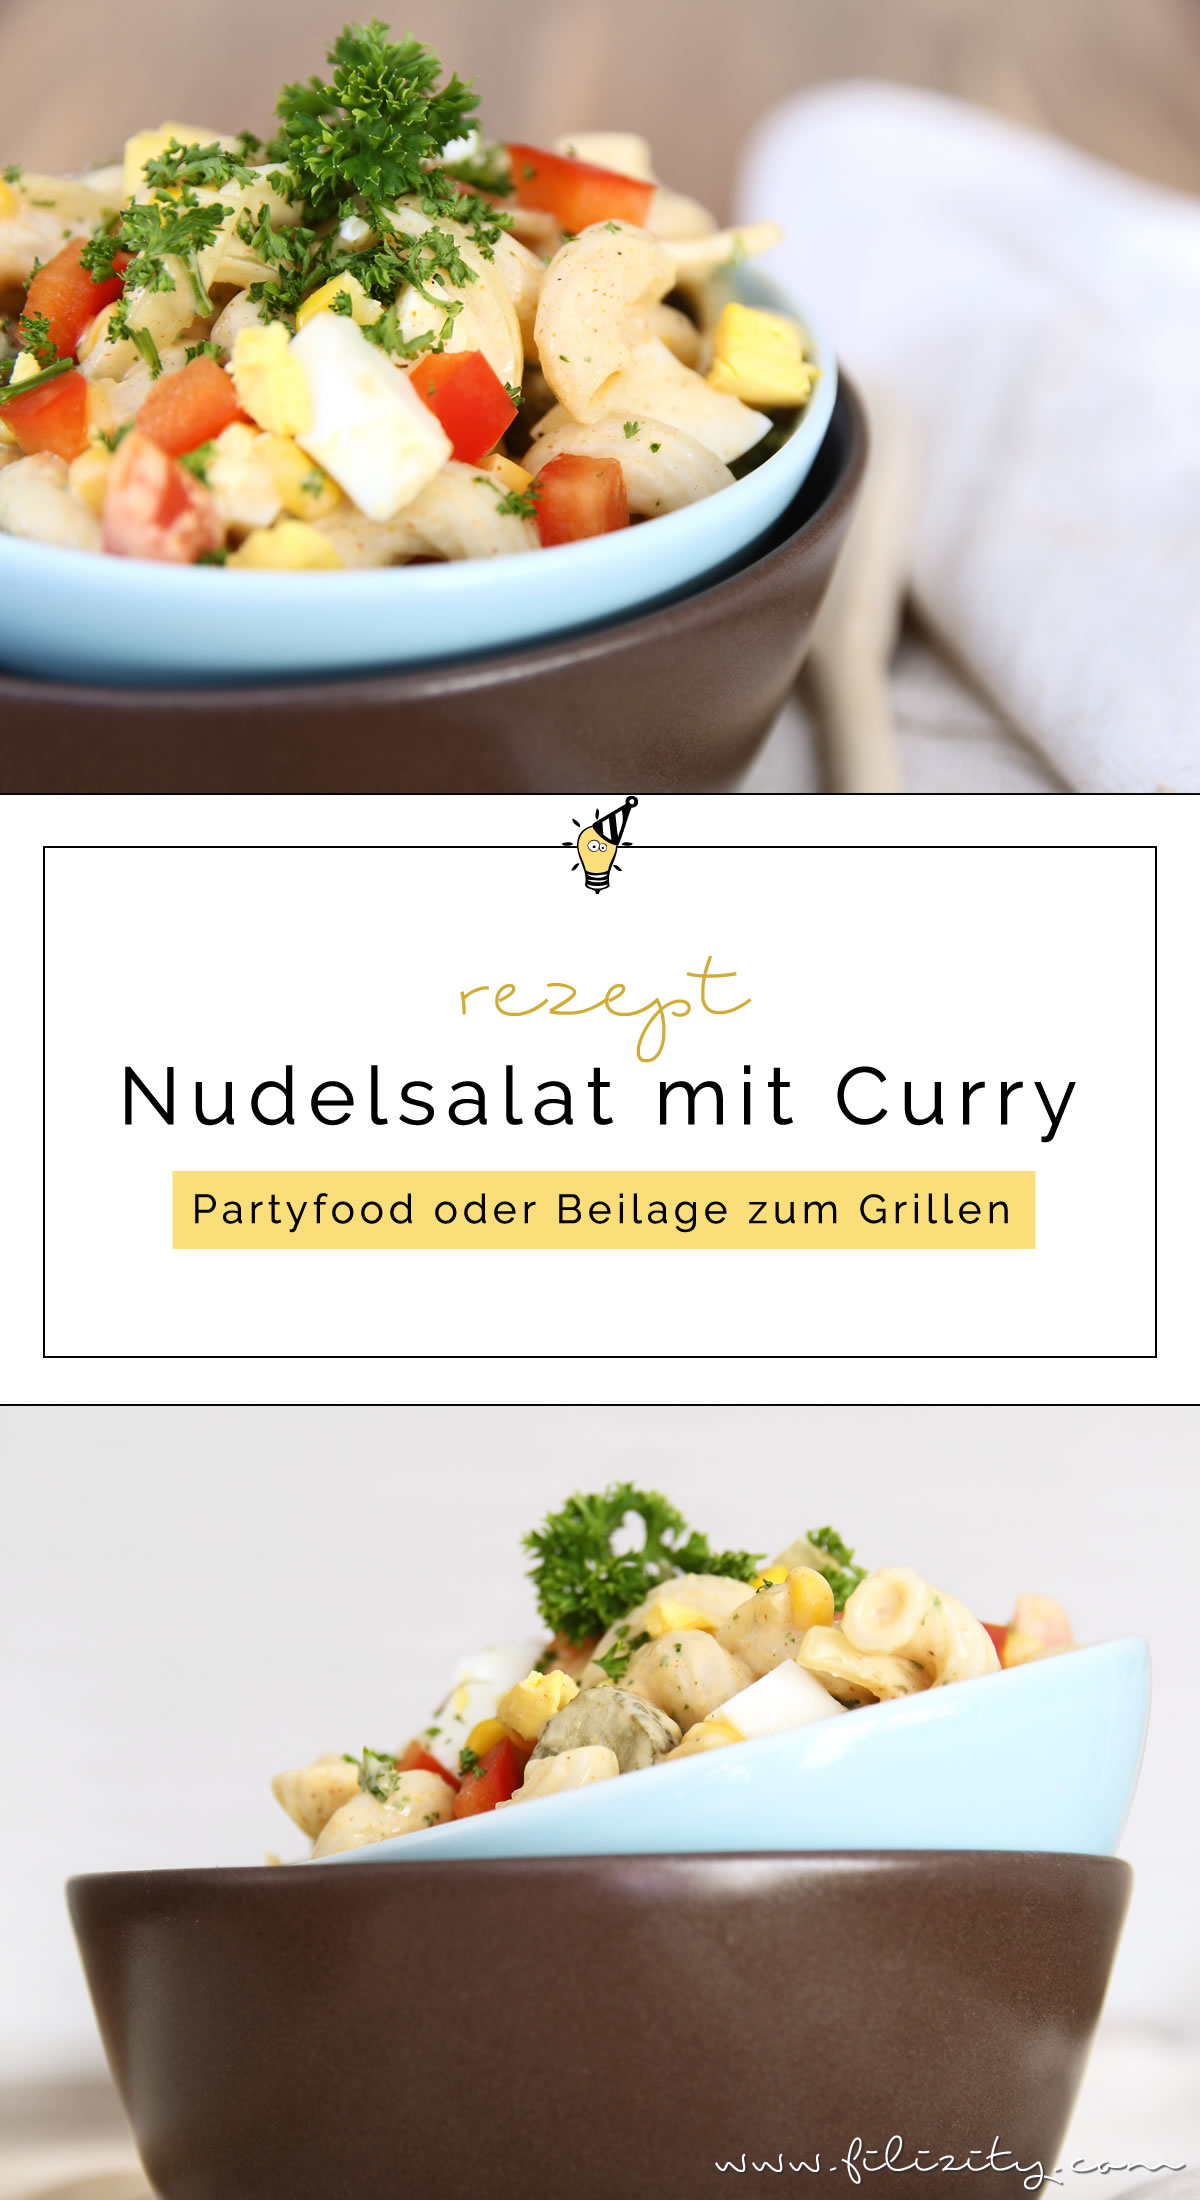 nudelsalat mit curry als partyfood oder beilage zum grillen food blog aus dem. Black Bedroom Furniture Sets. Home Design Ideas